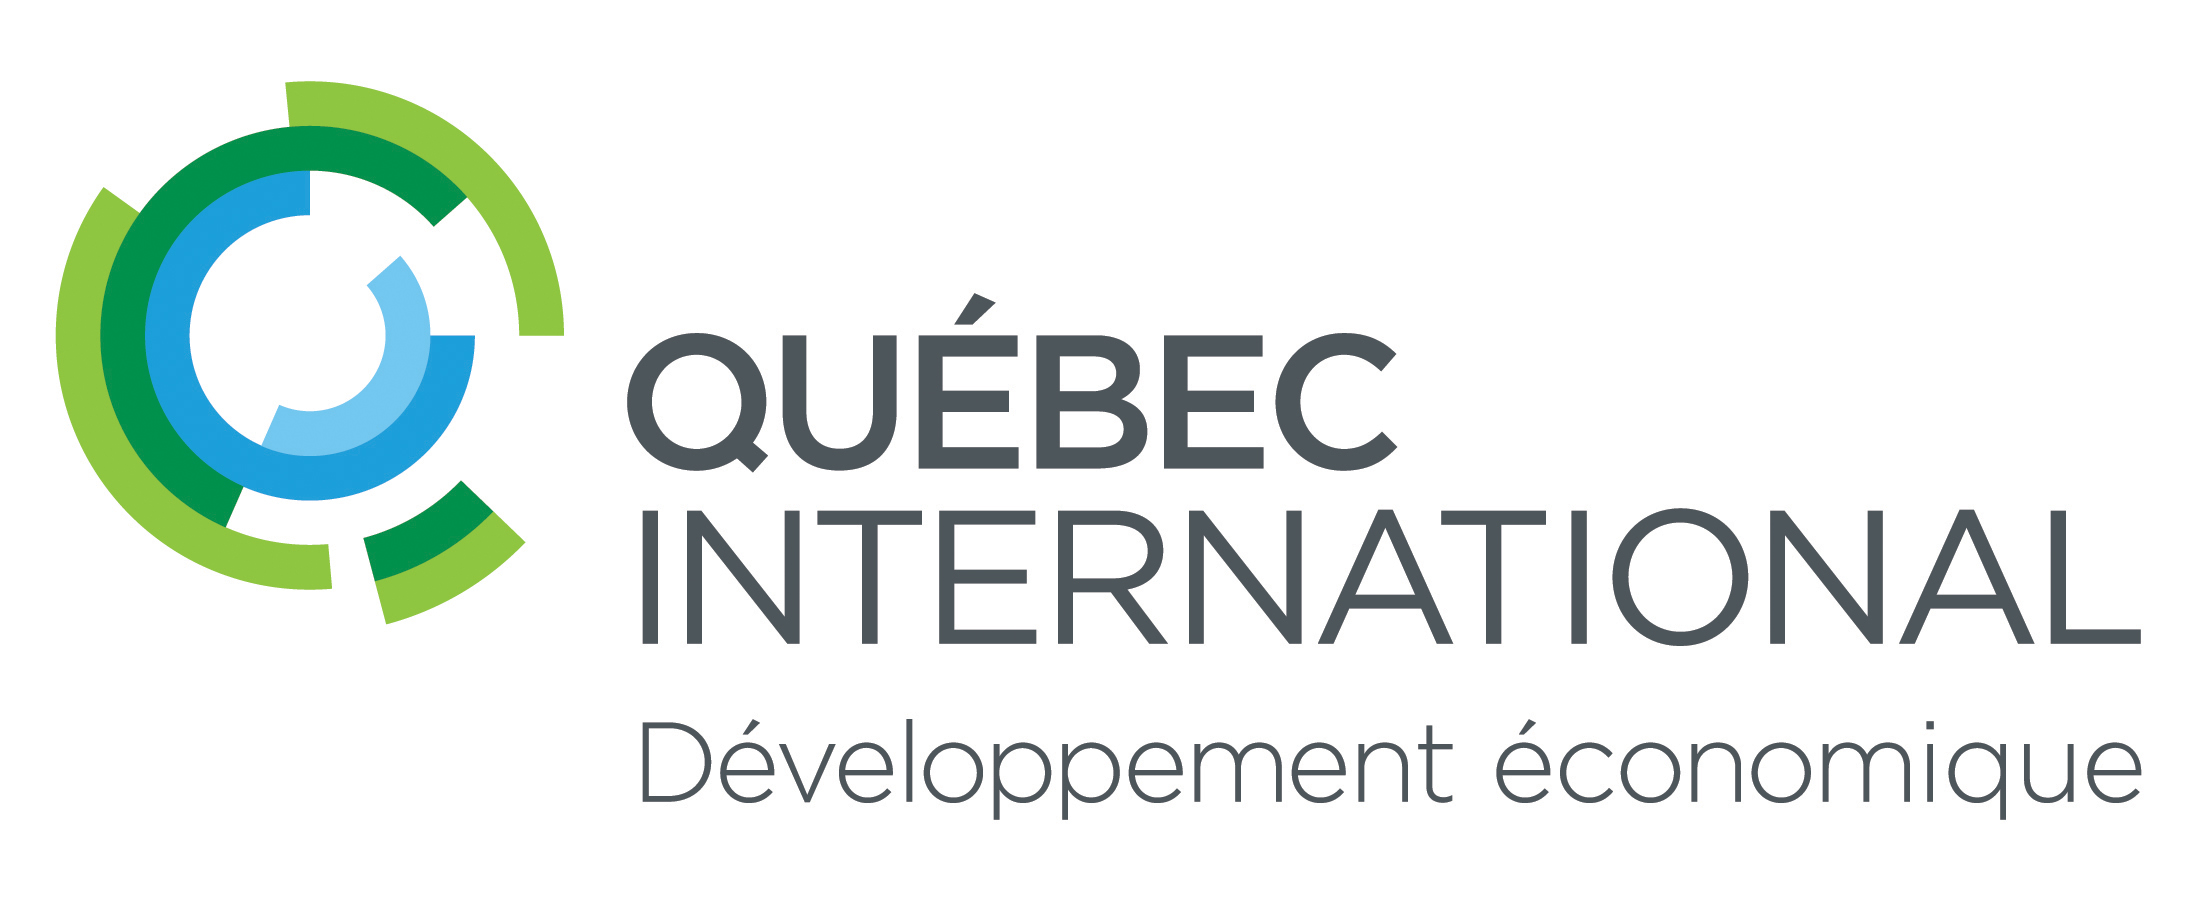 QUEBEC INTERNATIONAL